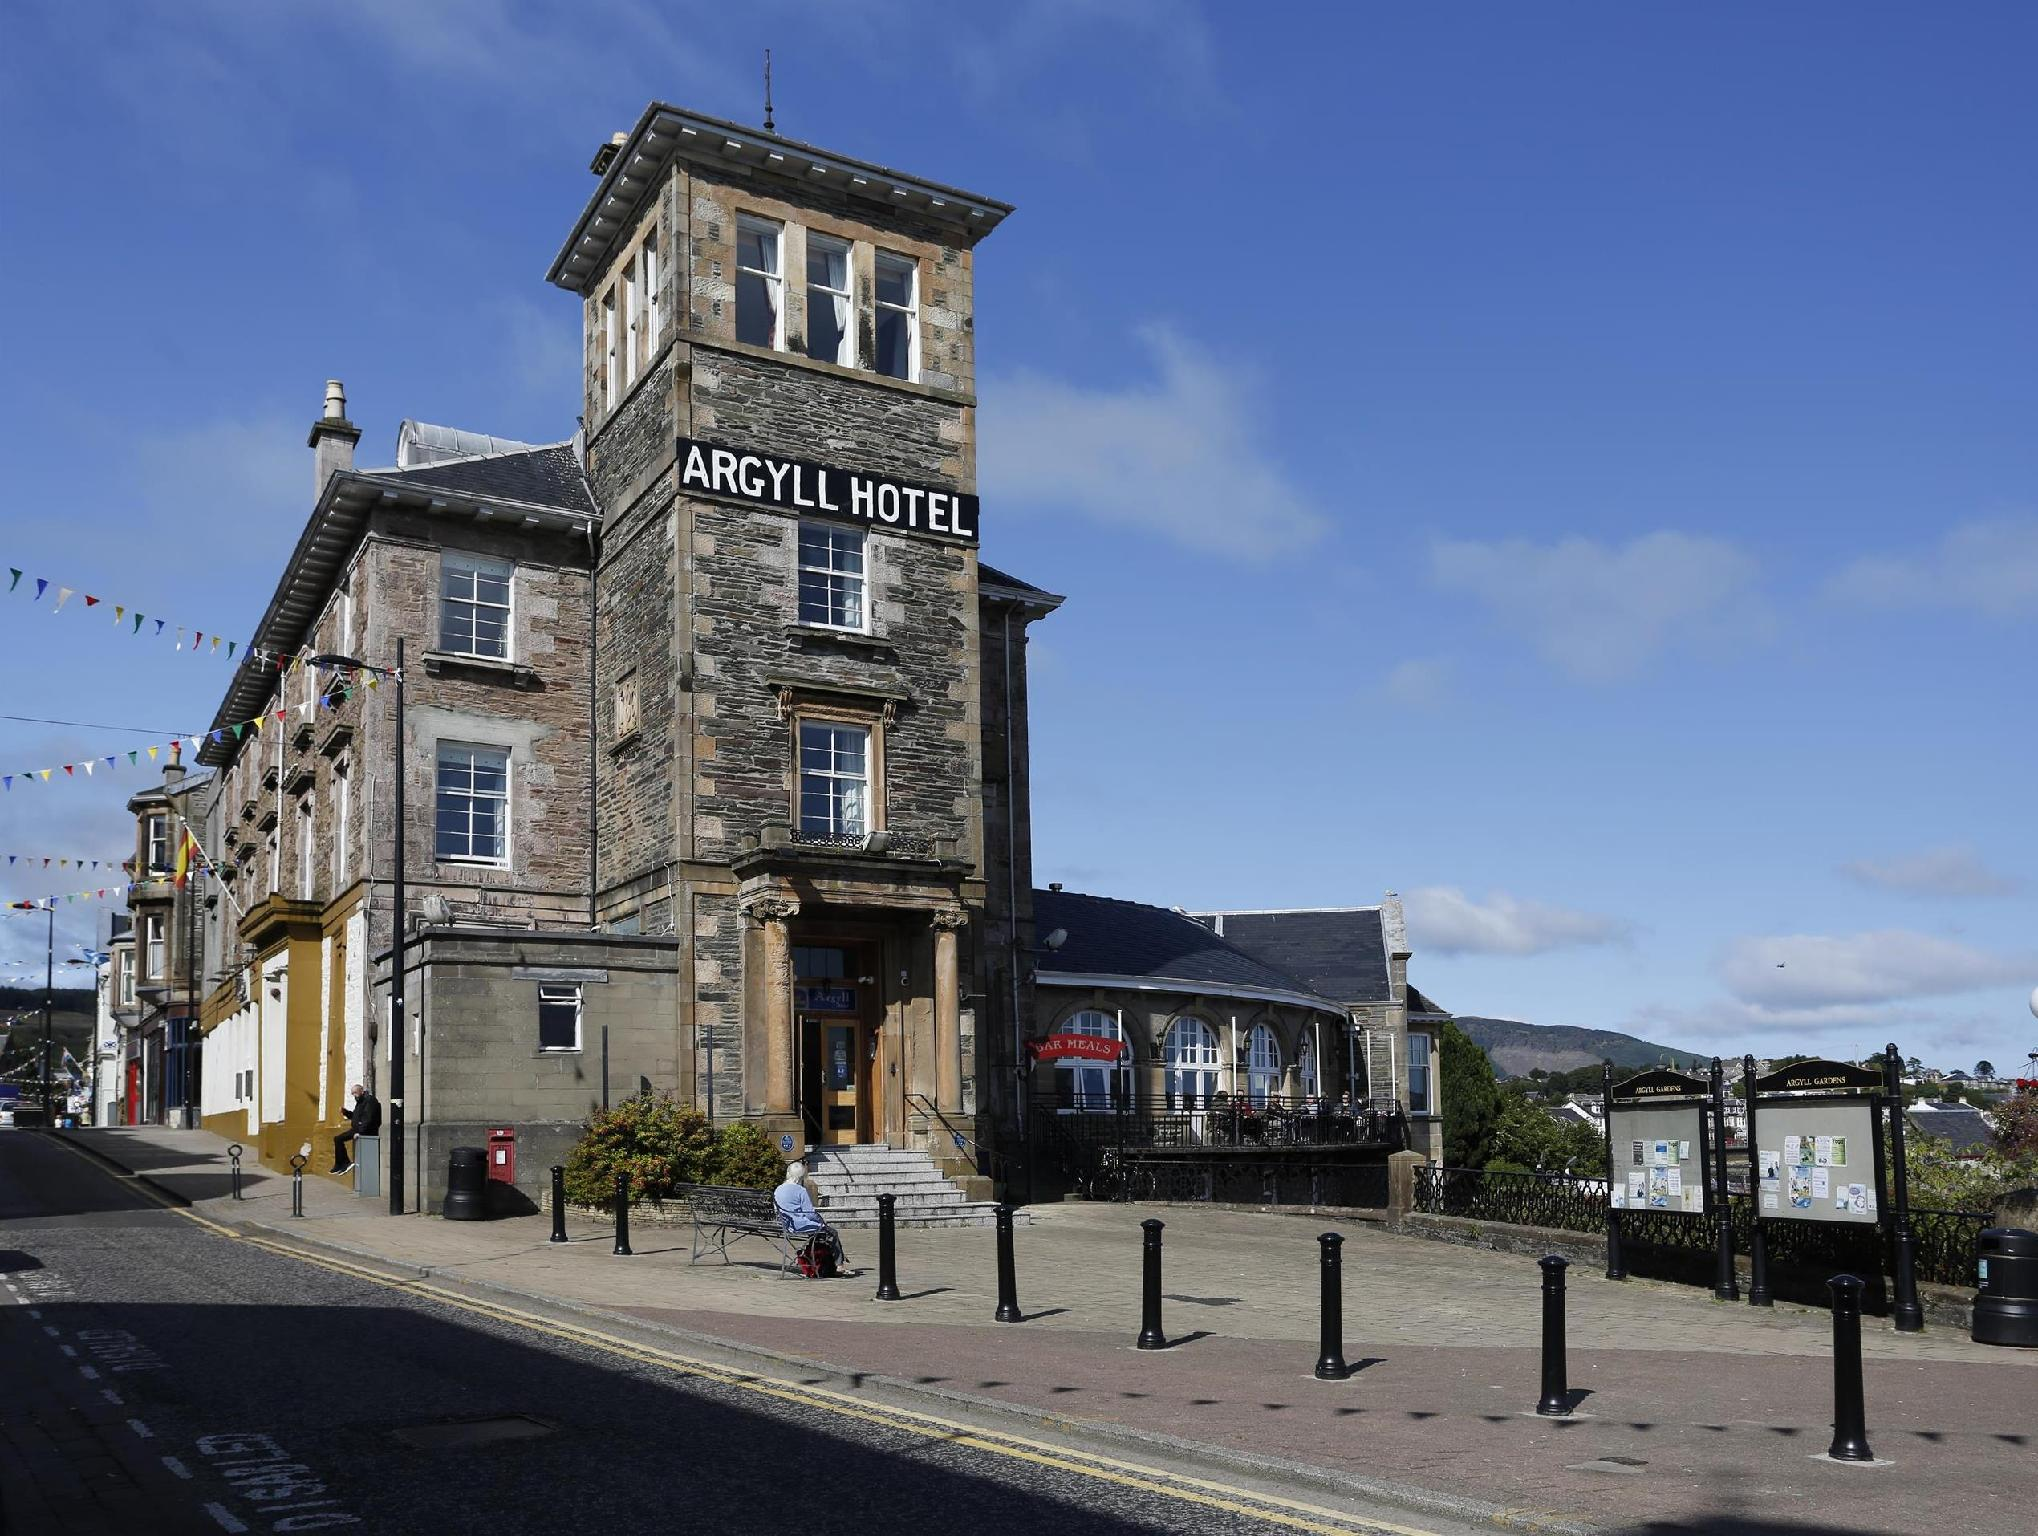 The Best Western Argyll Hotel, Argyll and Bute